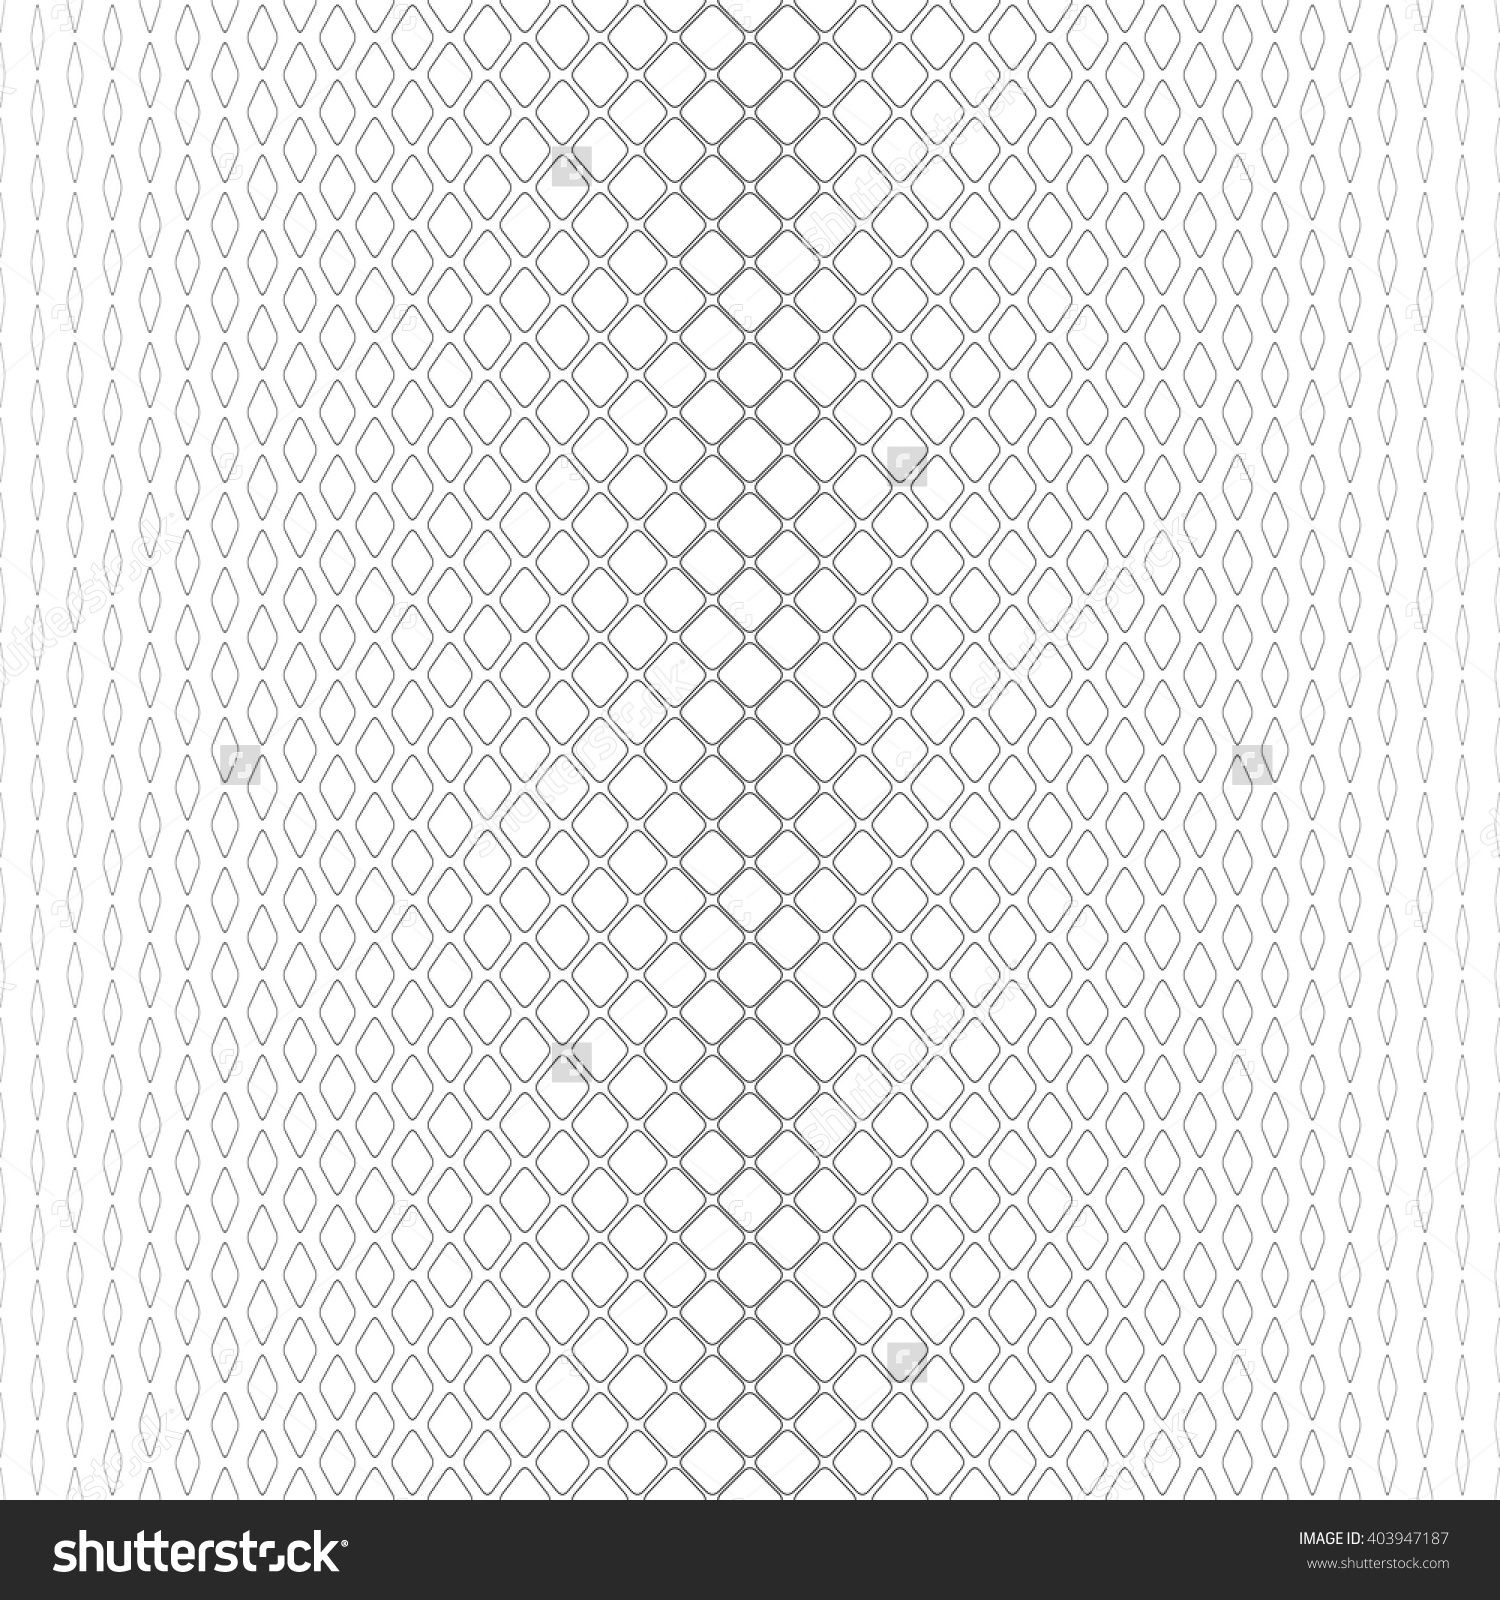 Repeating Black And White Abstract Rounded Square Pattern Background Ilustración vectorial en stock 403947187 : Shutterstock